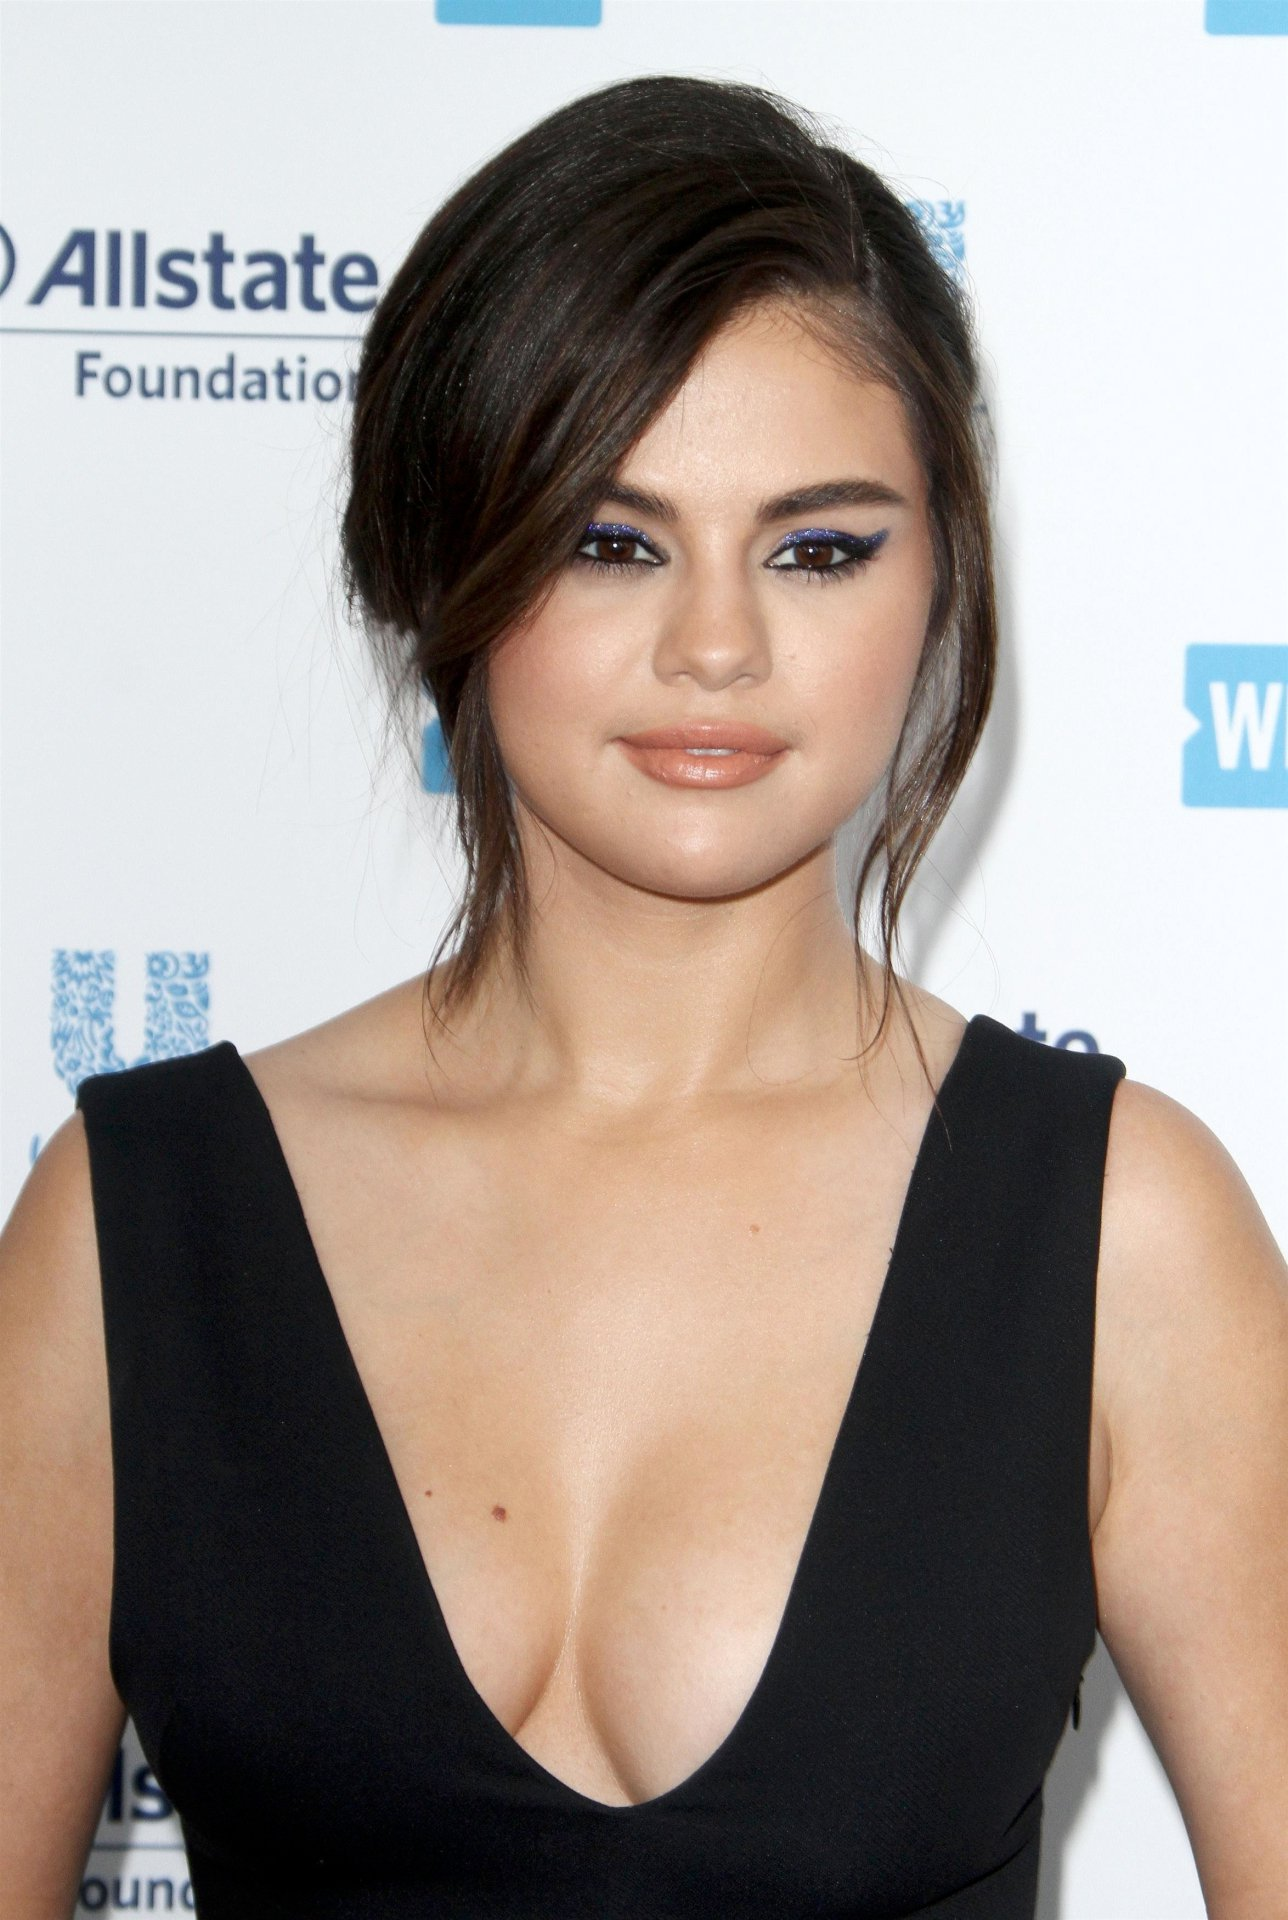 Selena Gomez - Sexy Big Cleavage at WE Day California 2019 in Inglewood - 1 : luvcelebs